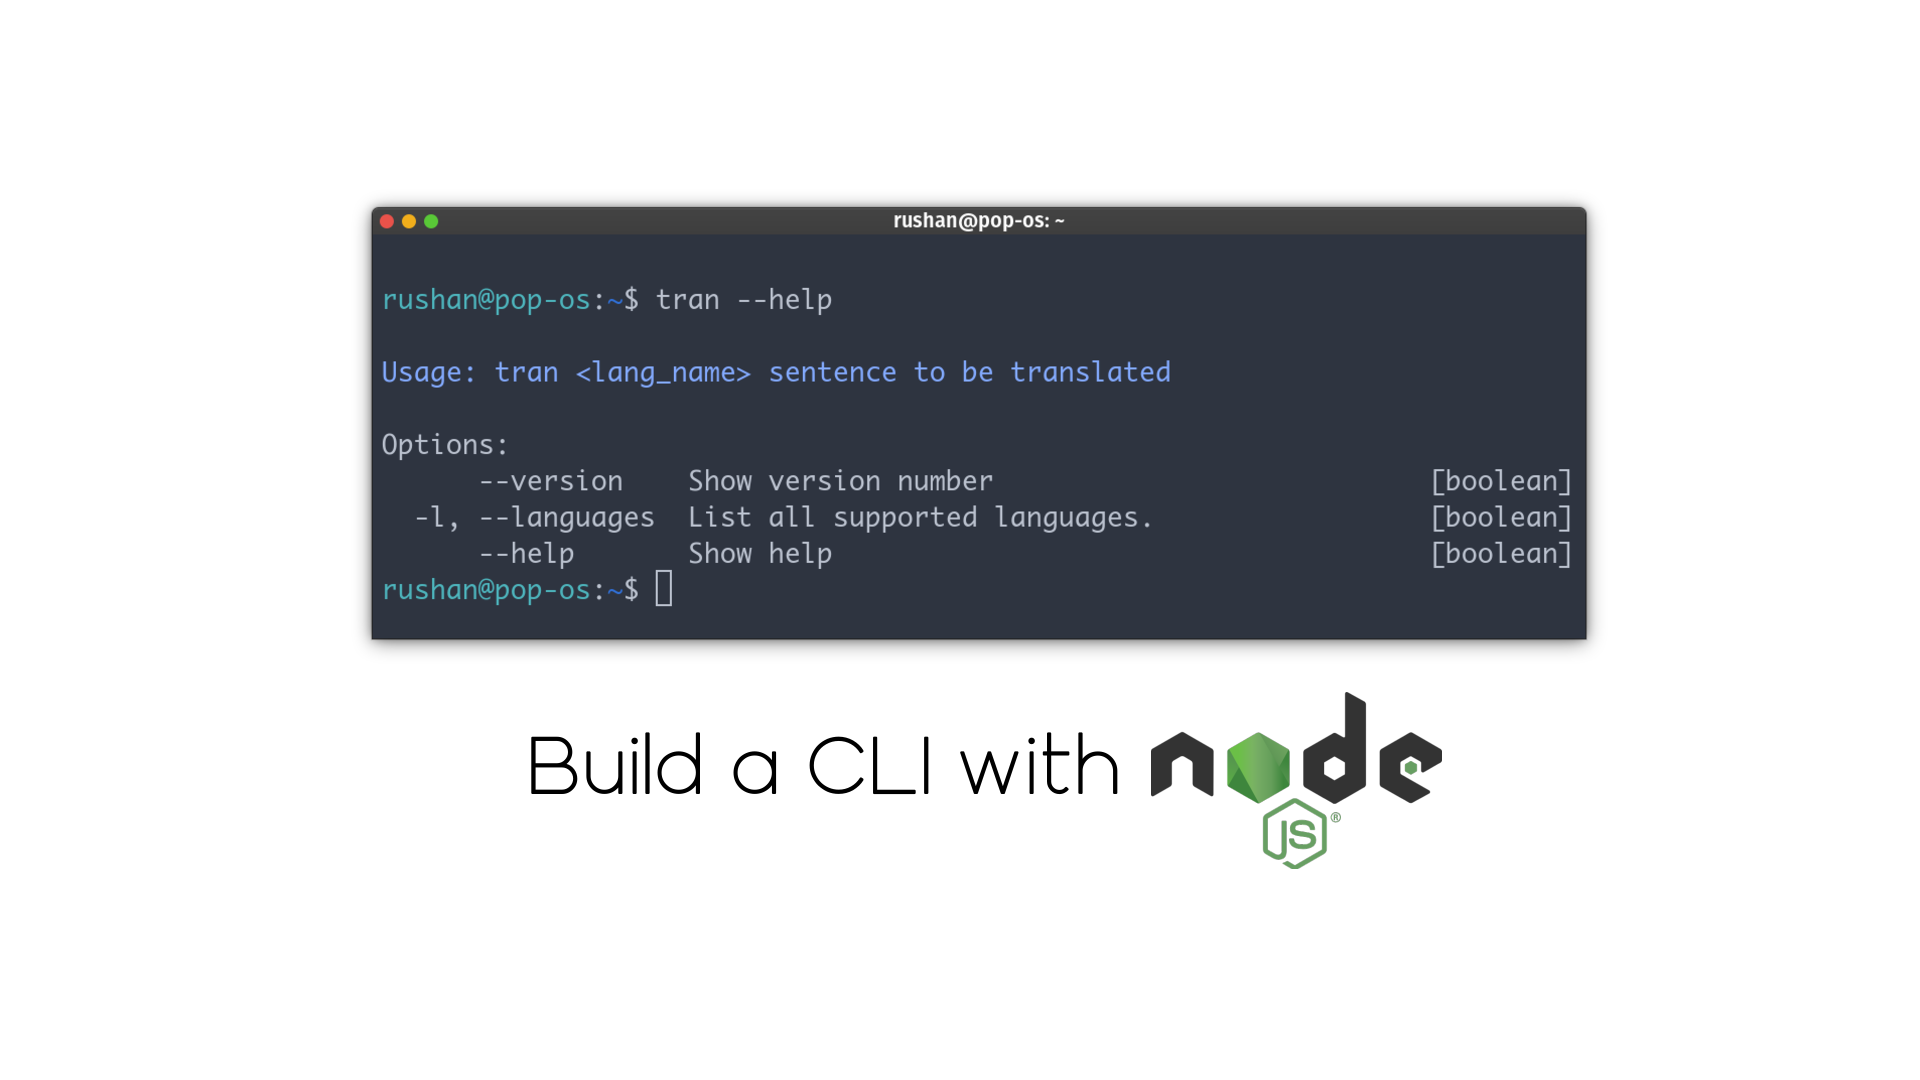 /how-to-build-a-command-line-utility-cli-with-nodejs-gm24315b feature image